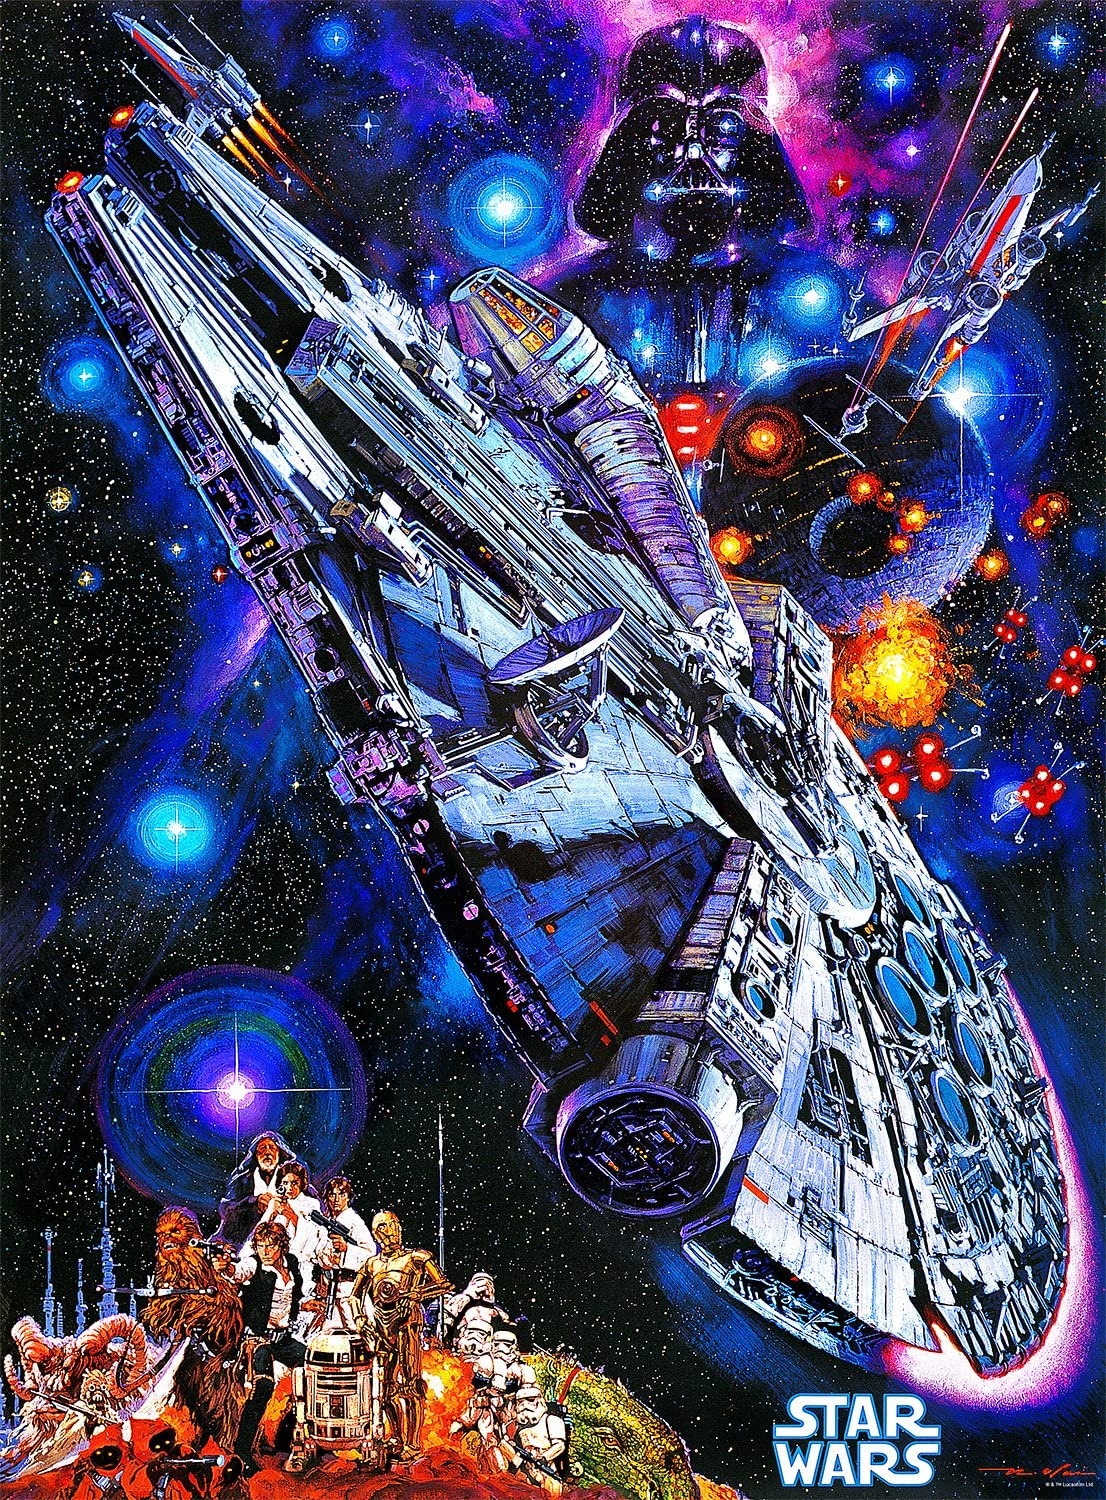 11. Star Wars Vintage Art: You're All Clear, Kid (1000 Piece Jigsaw Puzzle)